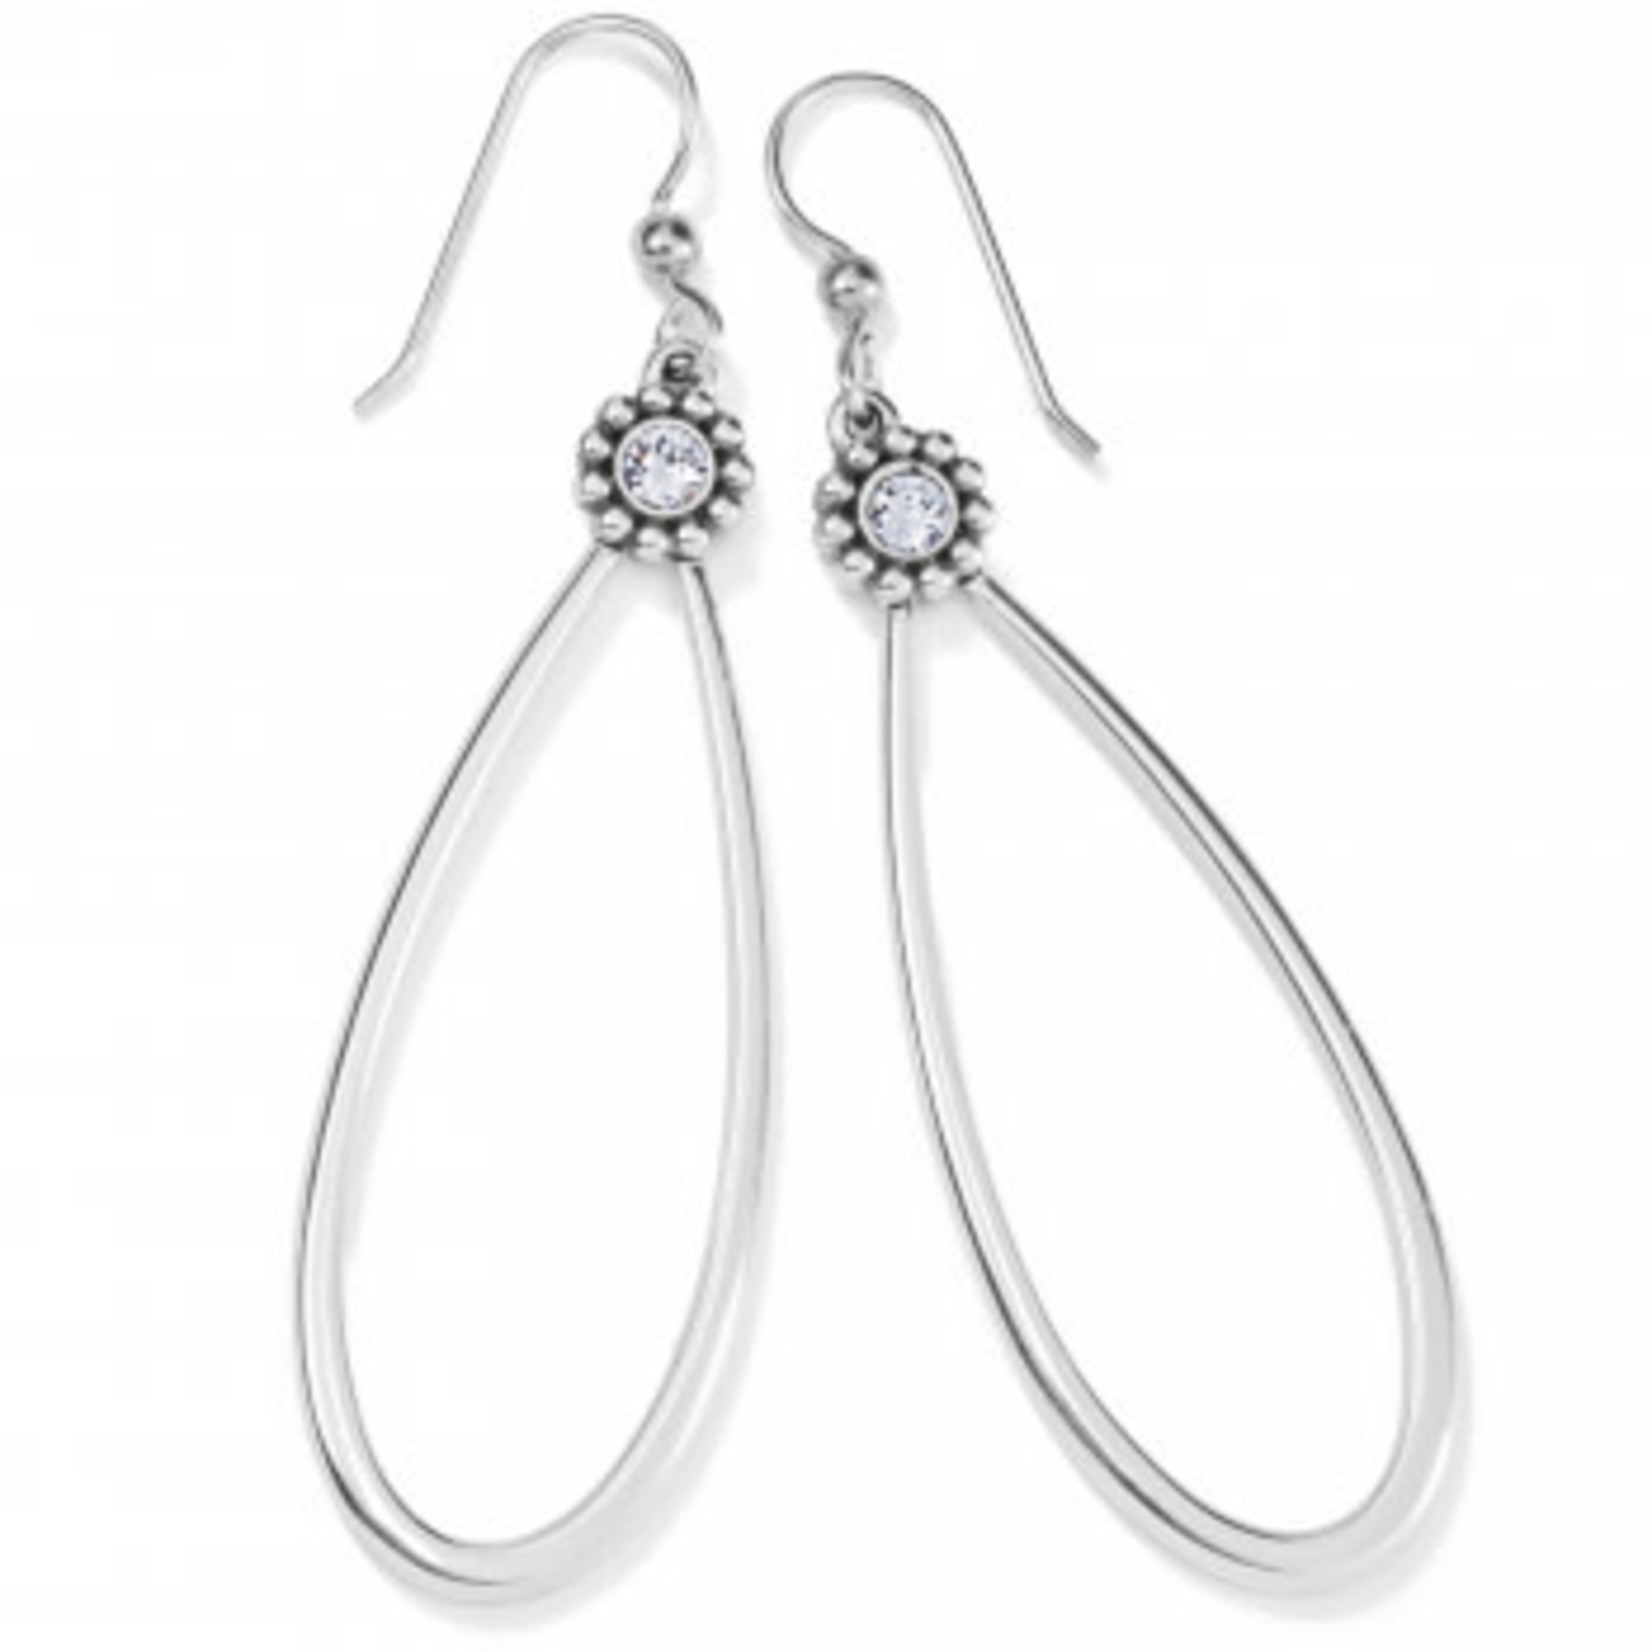 Brighton Twinkle Loop French Wire Earrings Silver OS